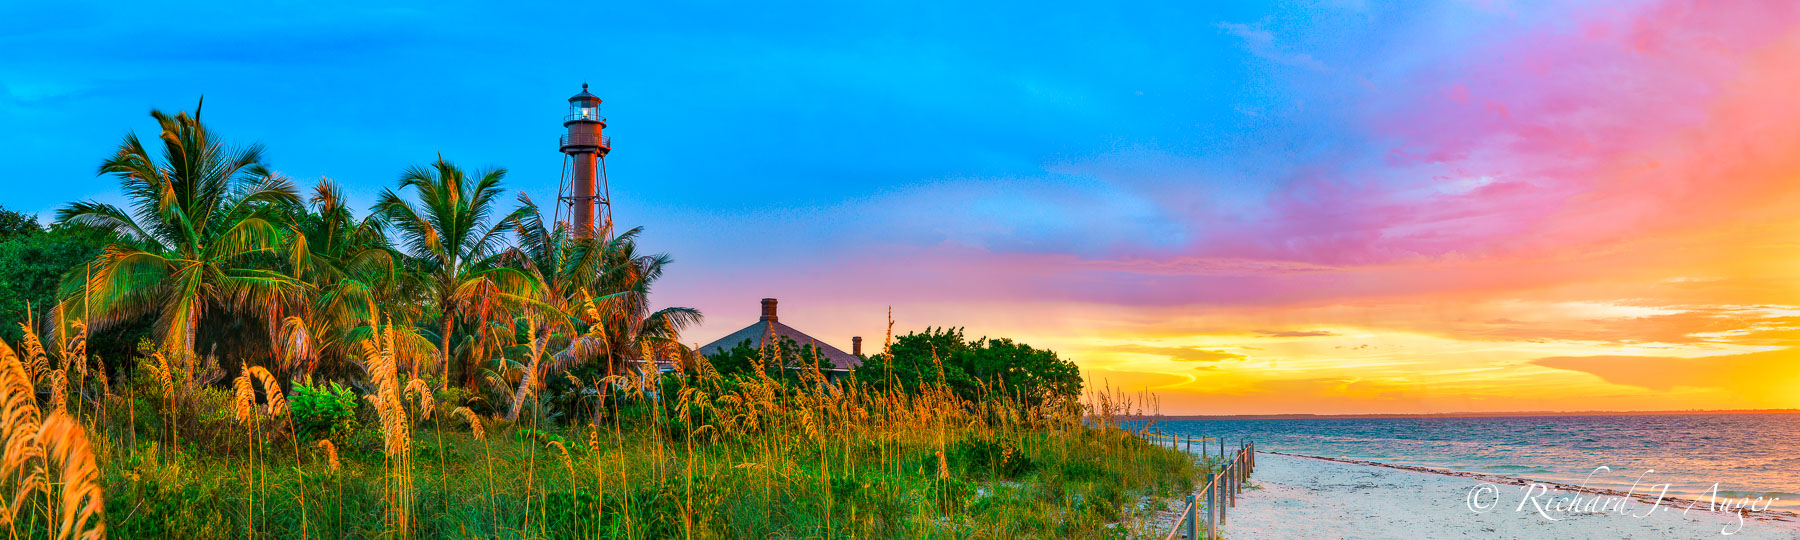 Sanibel Island, Lighthouse, Florida, Sunrise, Colorful, palm trees, sand, ocean, landscape, nature, photograph